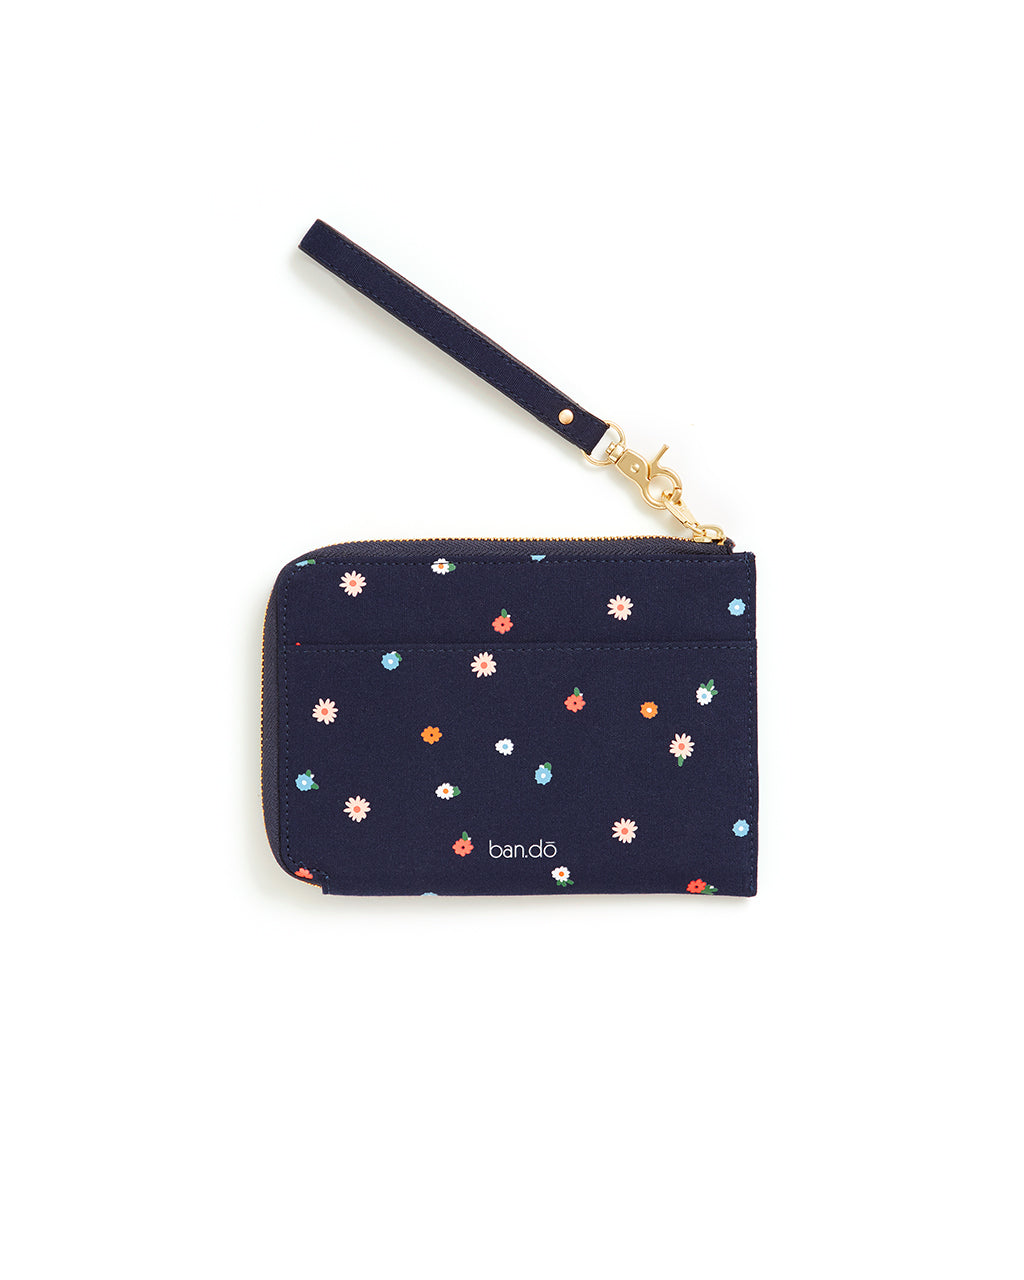 getaway travel clutch - field day